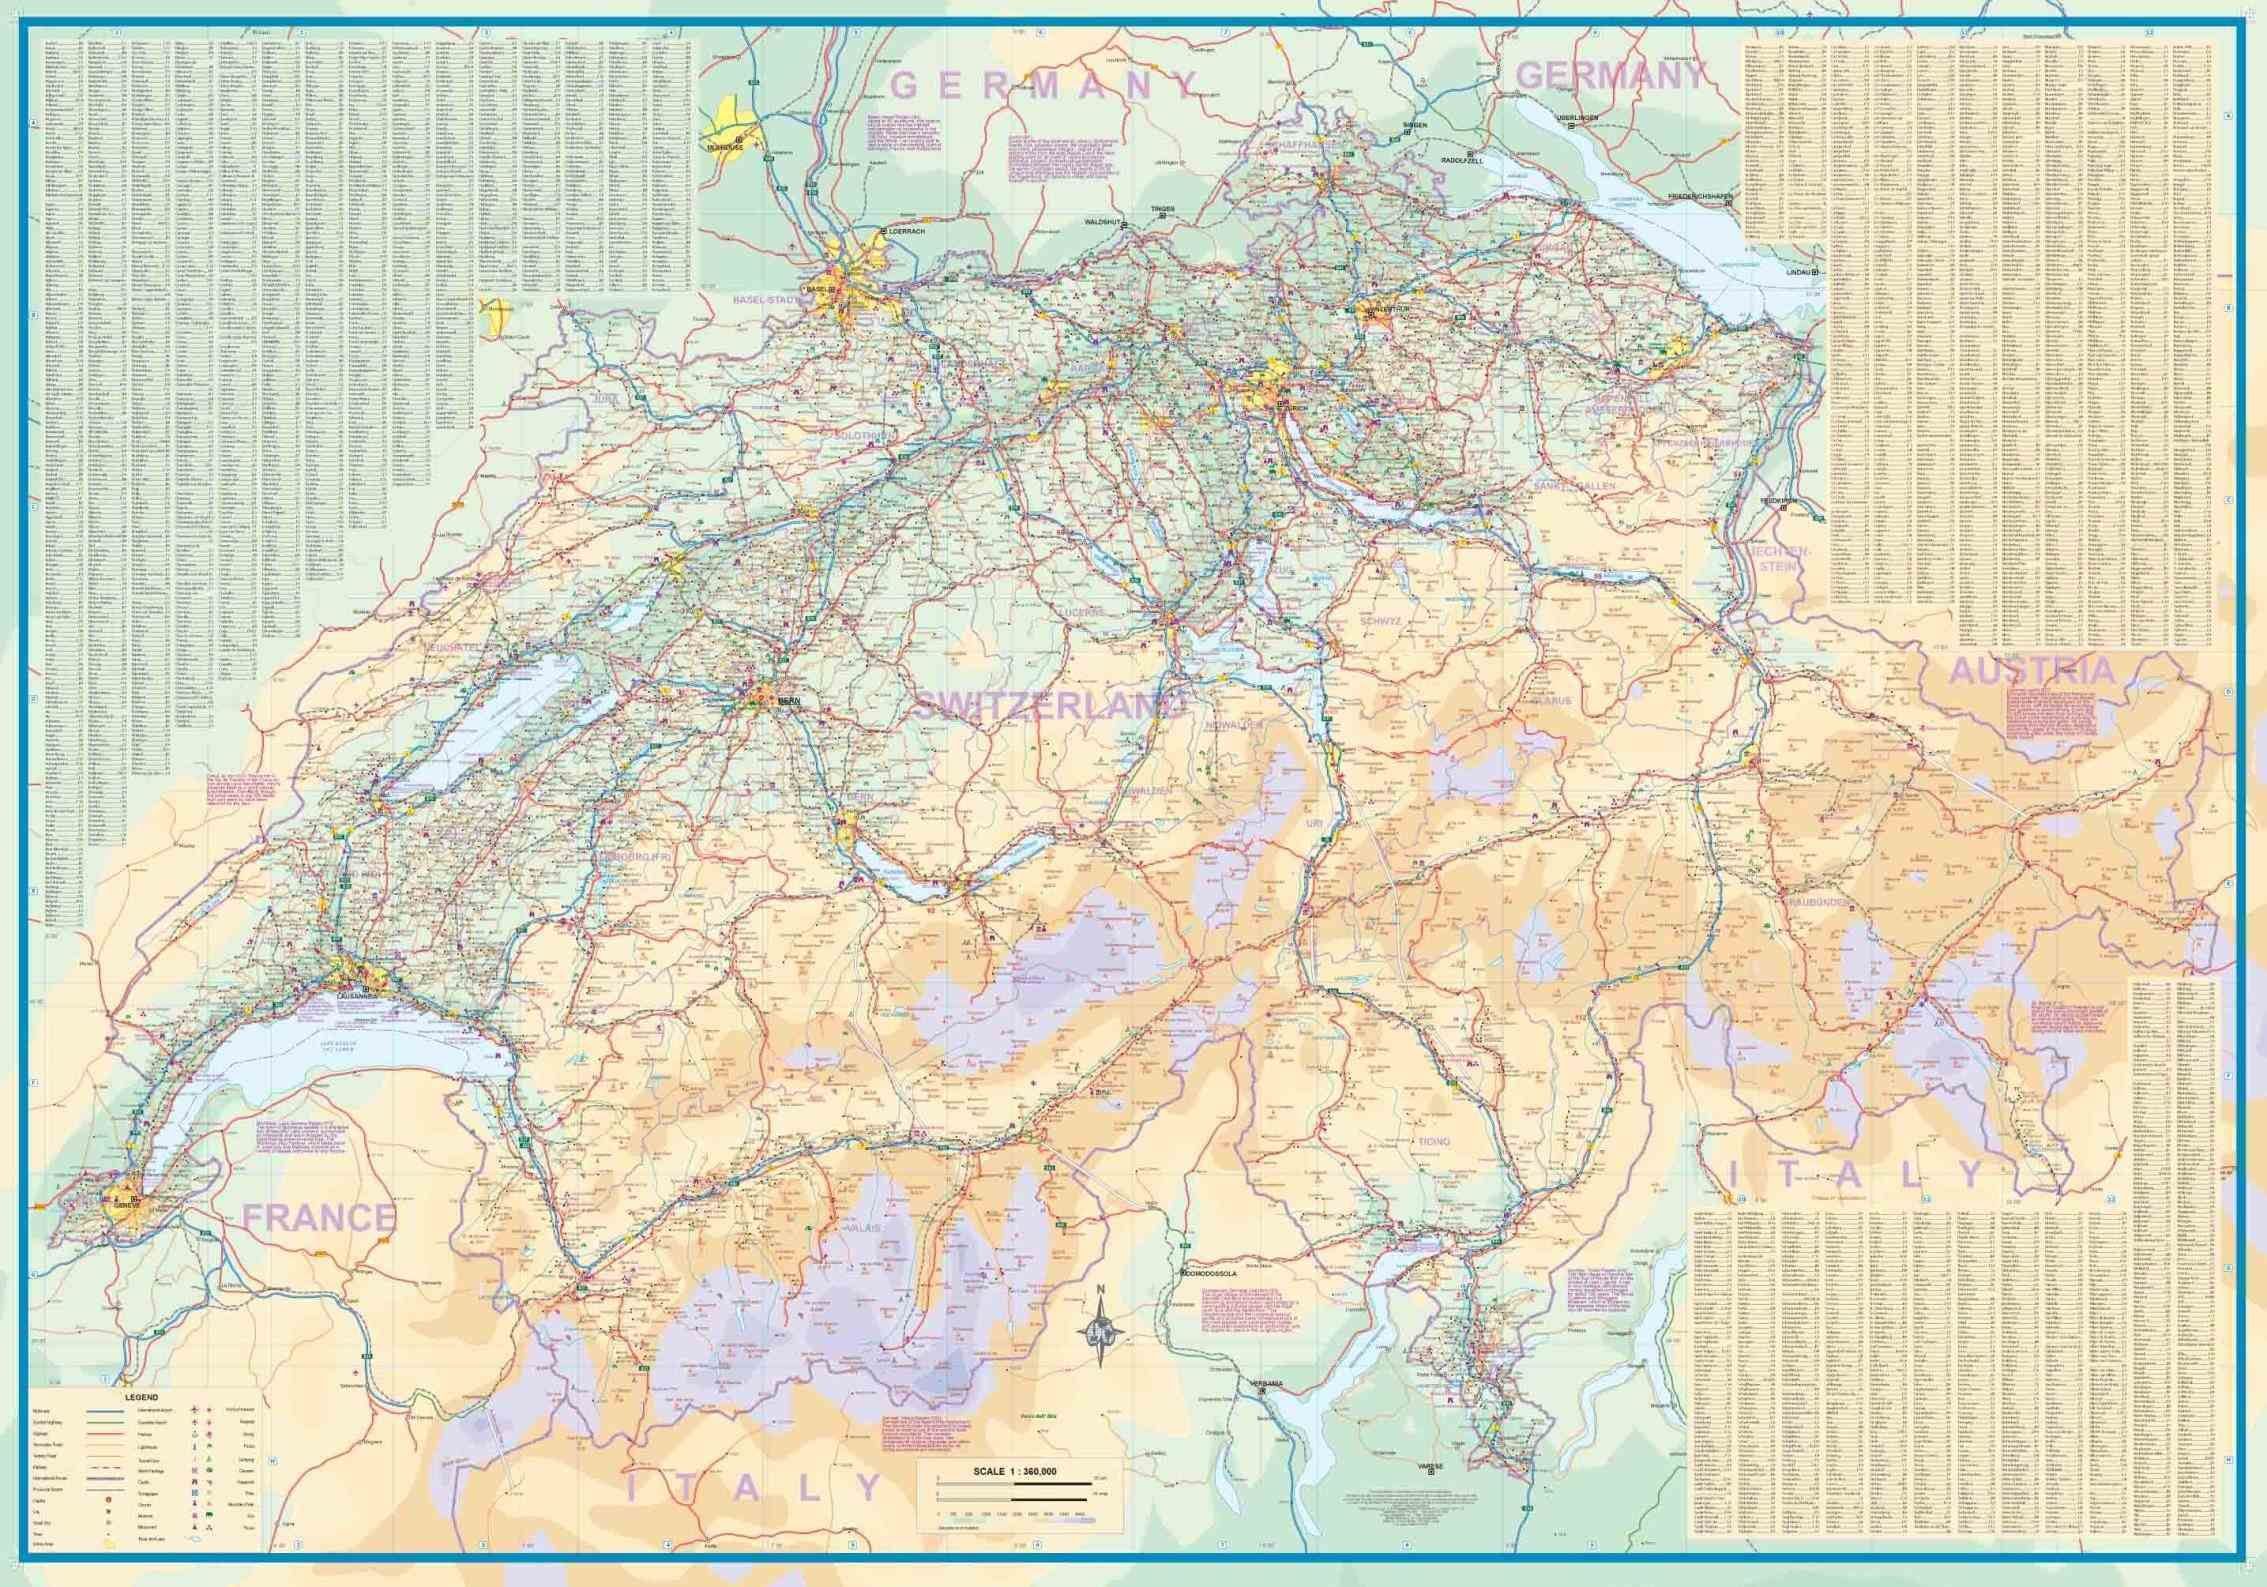 itm scompany s s geneva switzerland map of canton municipality